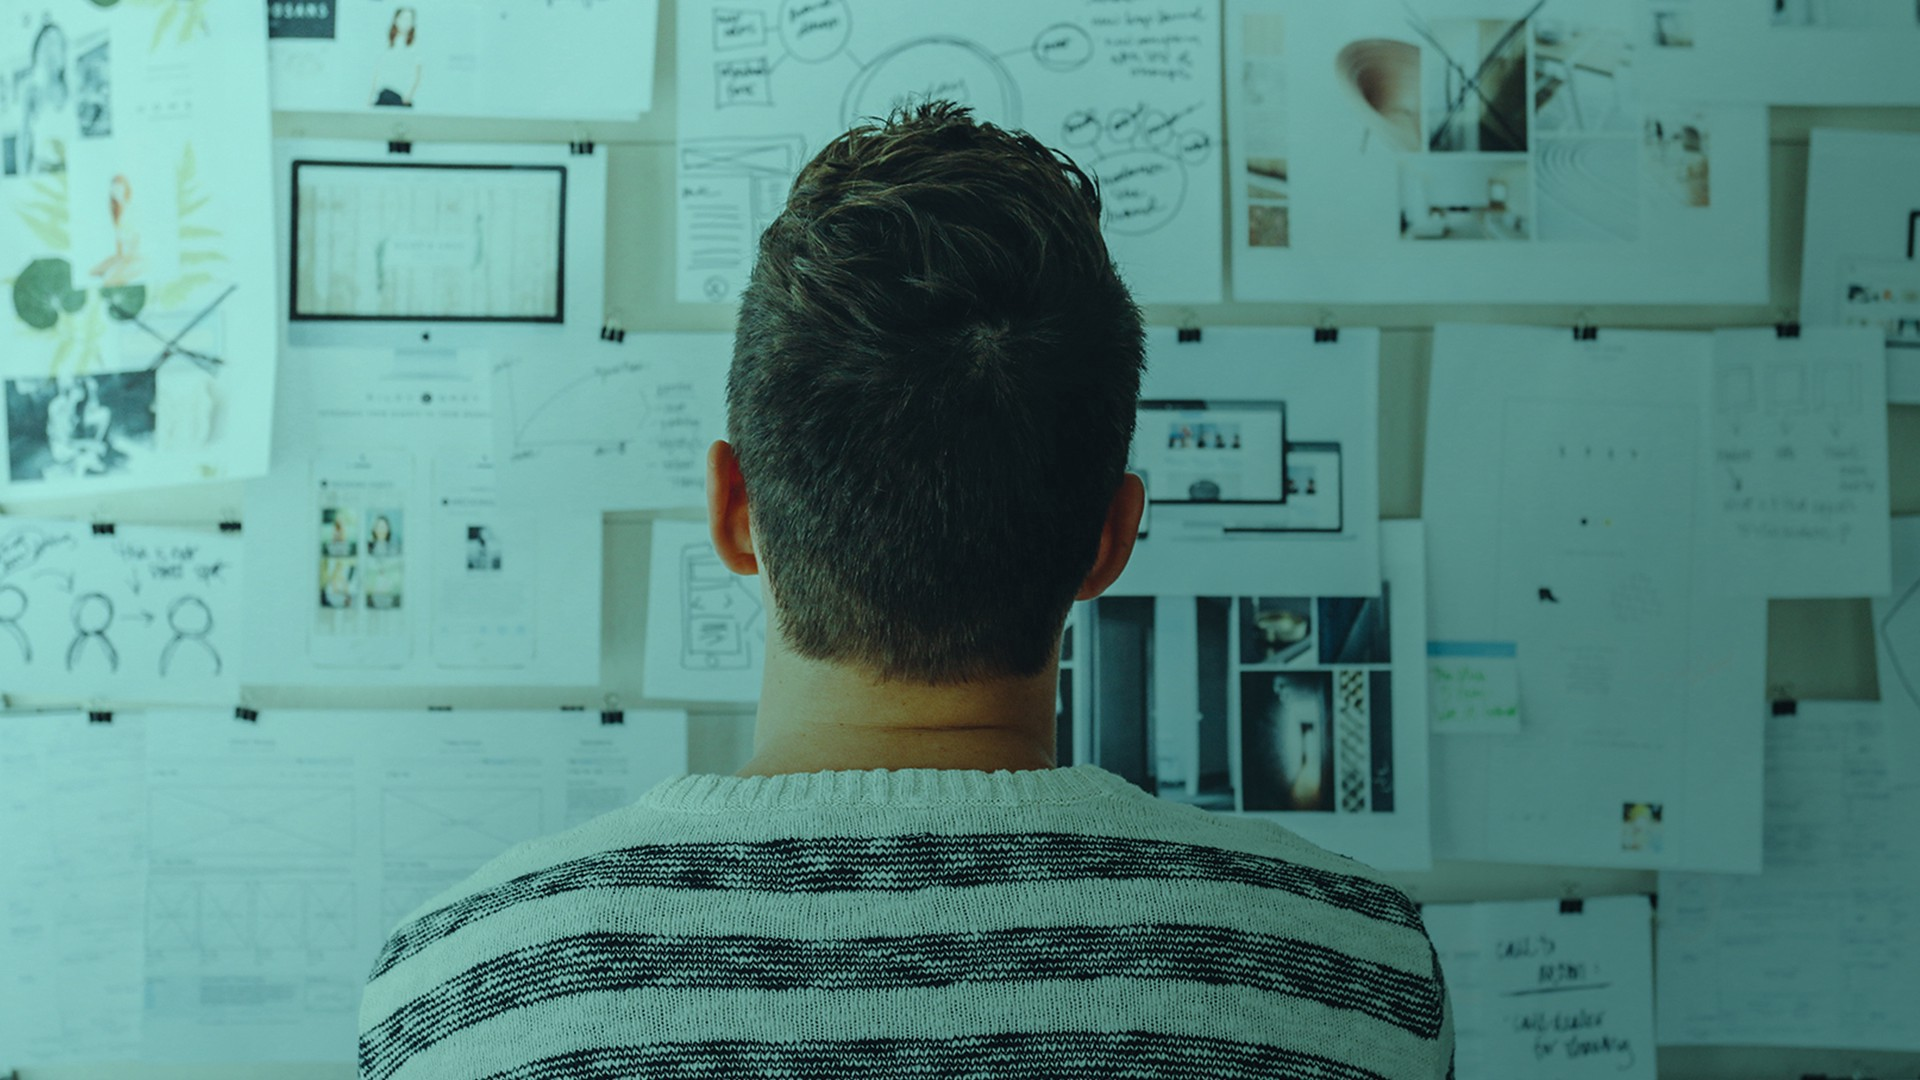 Back of man's head looking at sketches on paper pinned to a corkboard